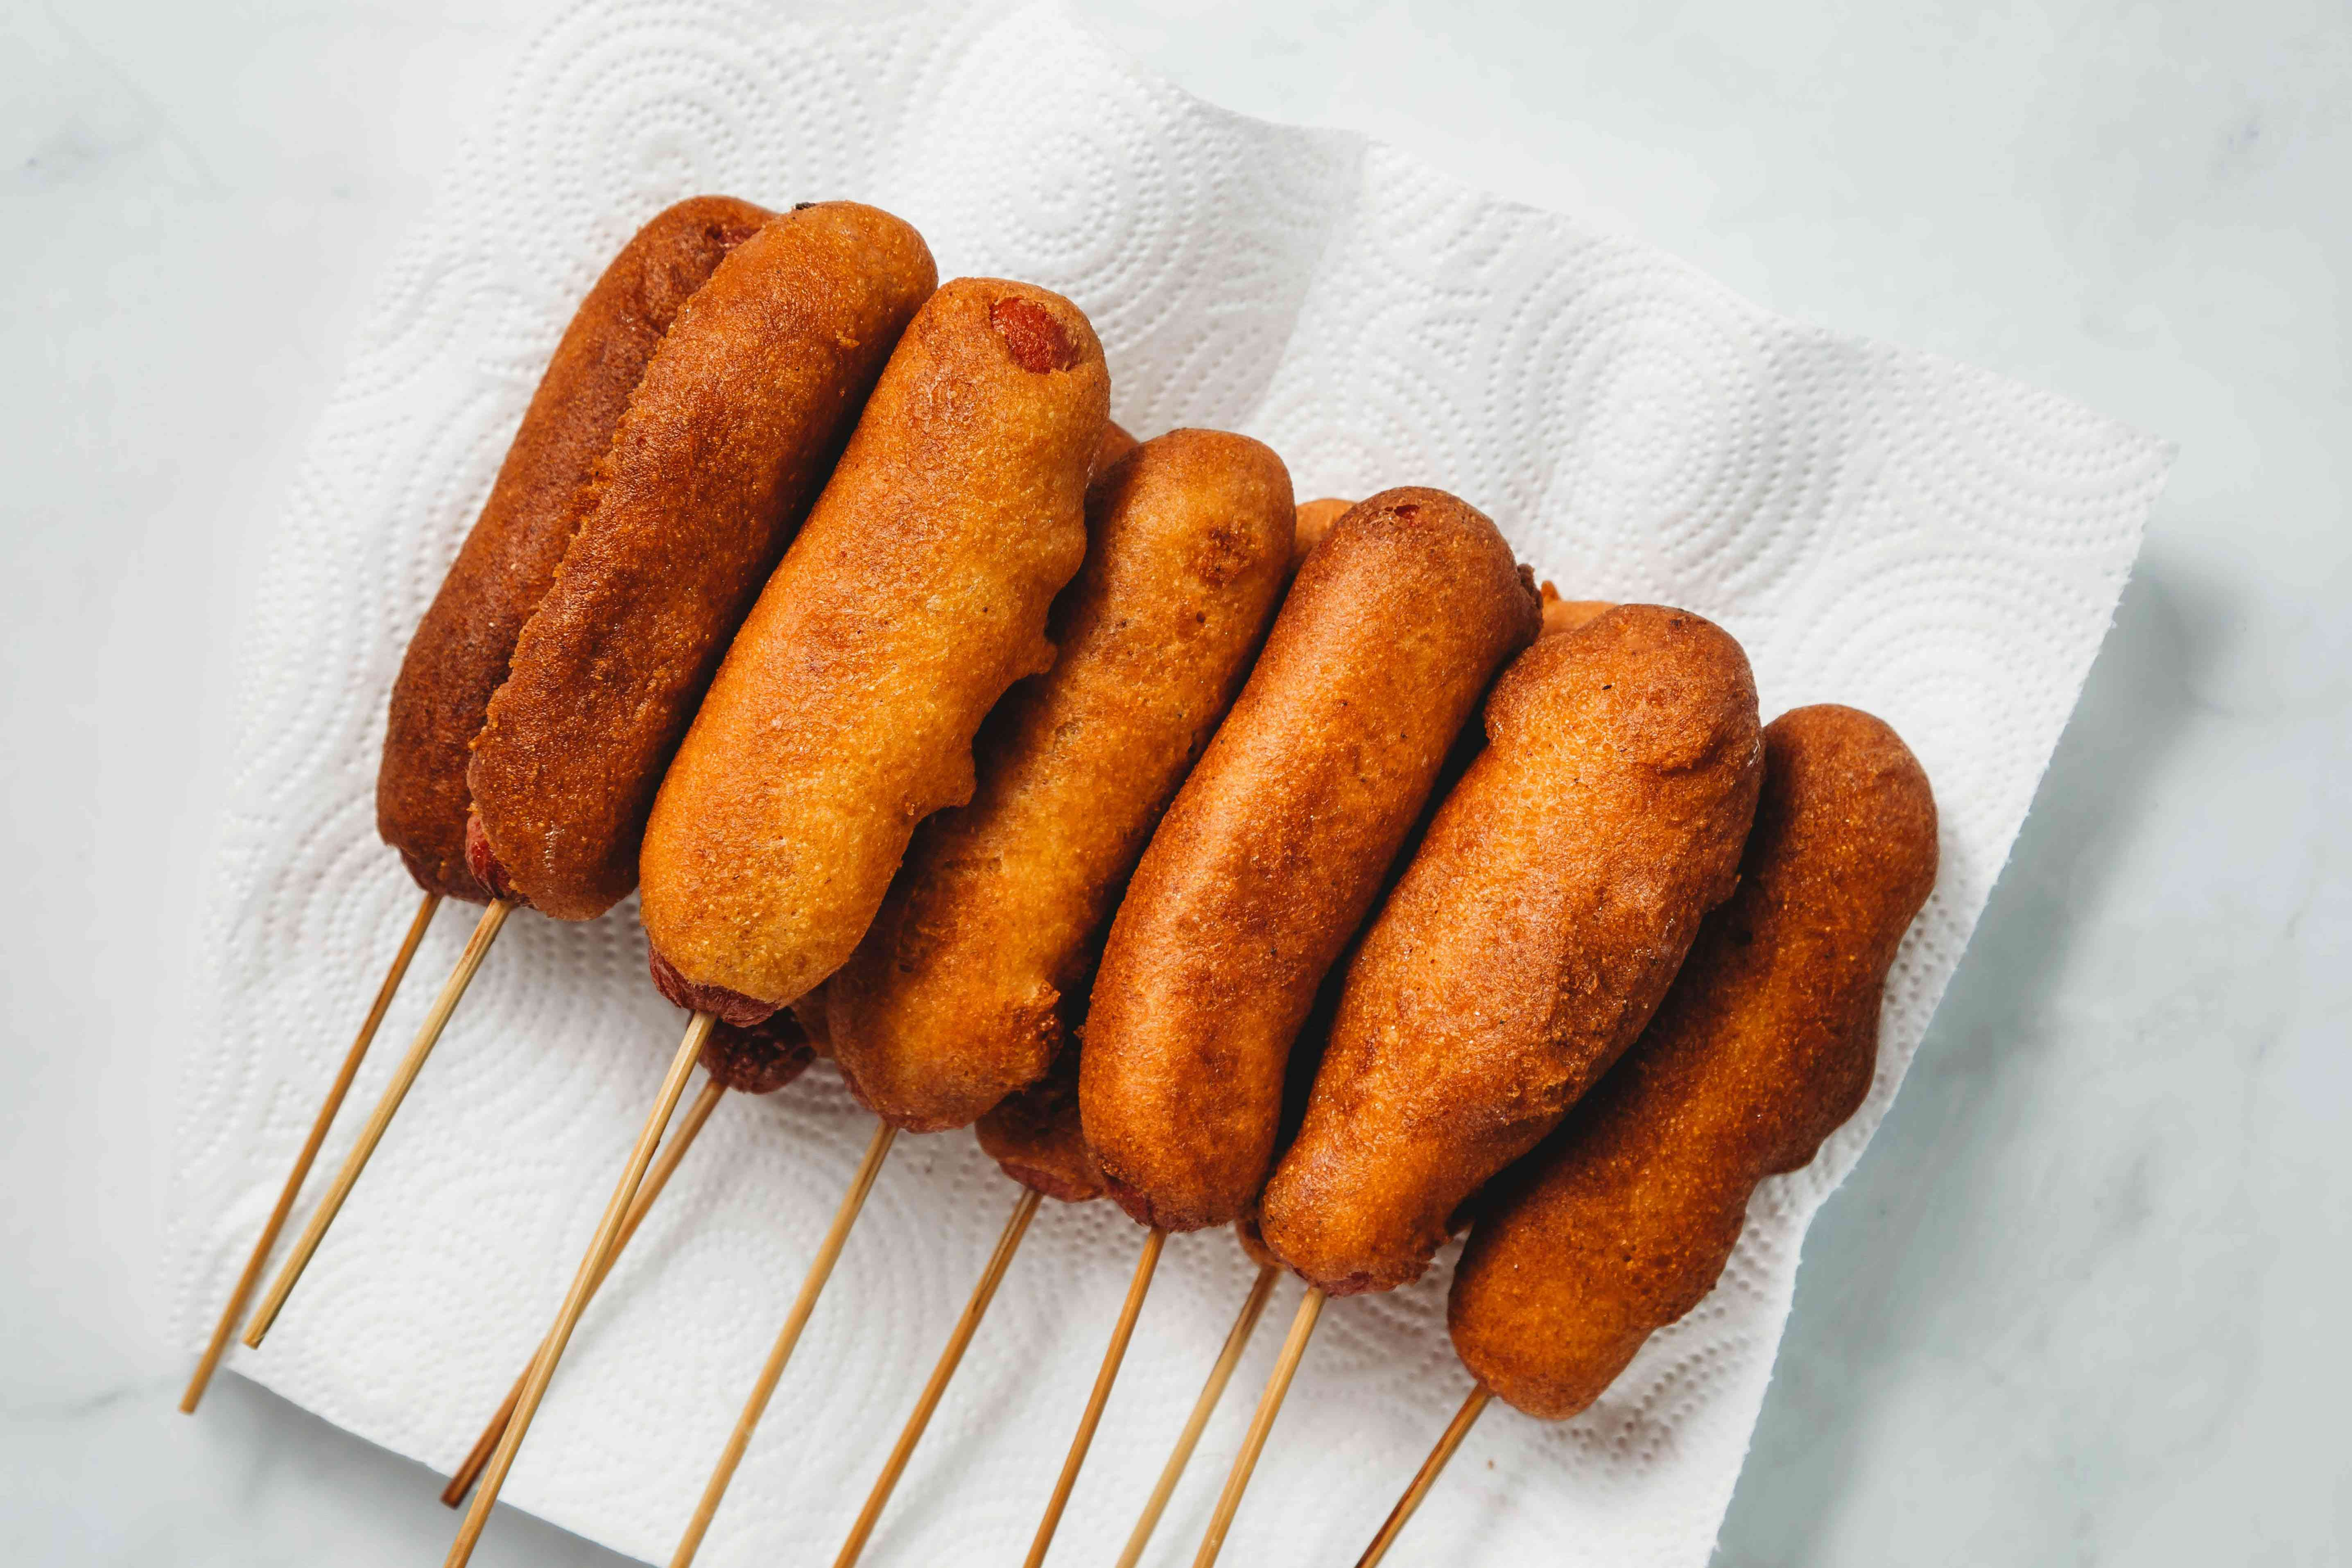 Deep Fried Corn Dogs on paper towels